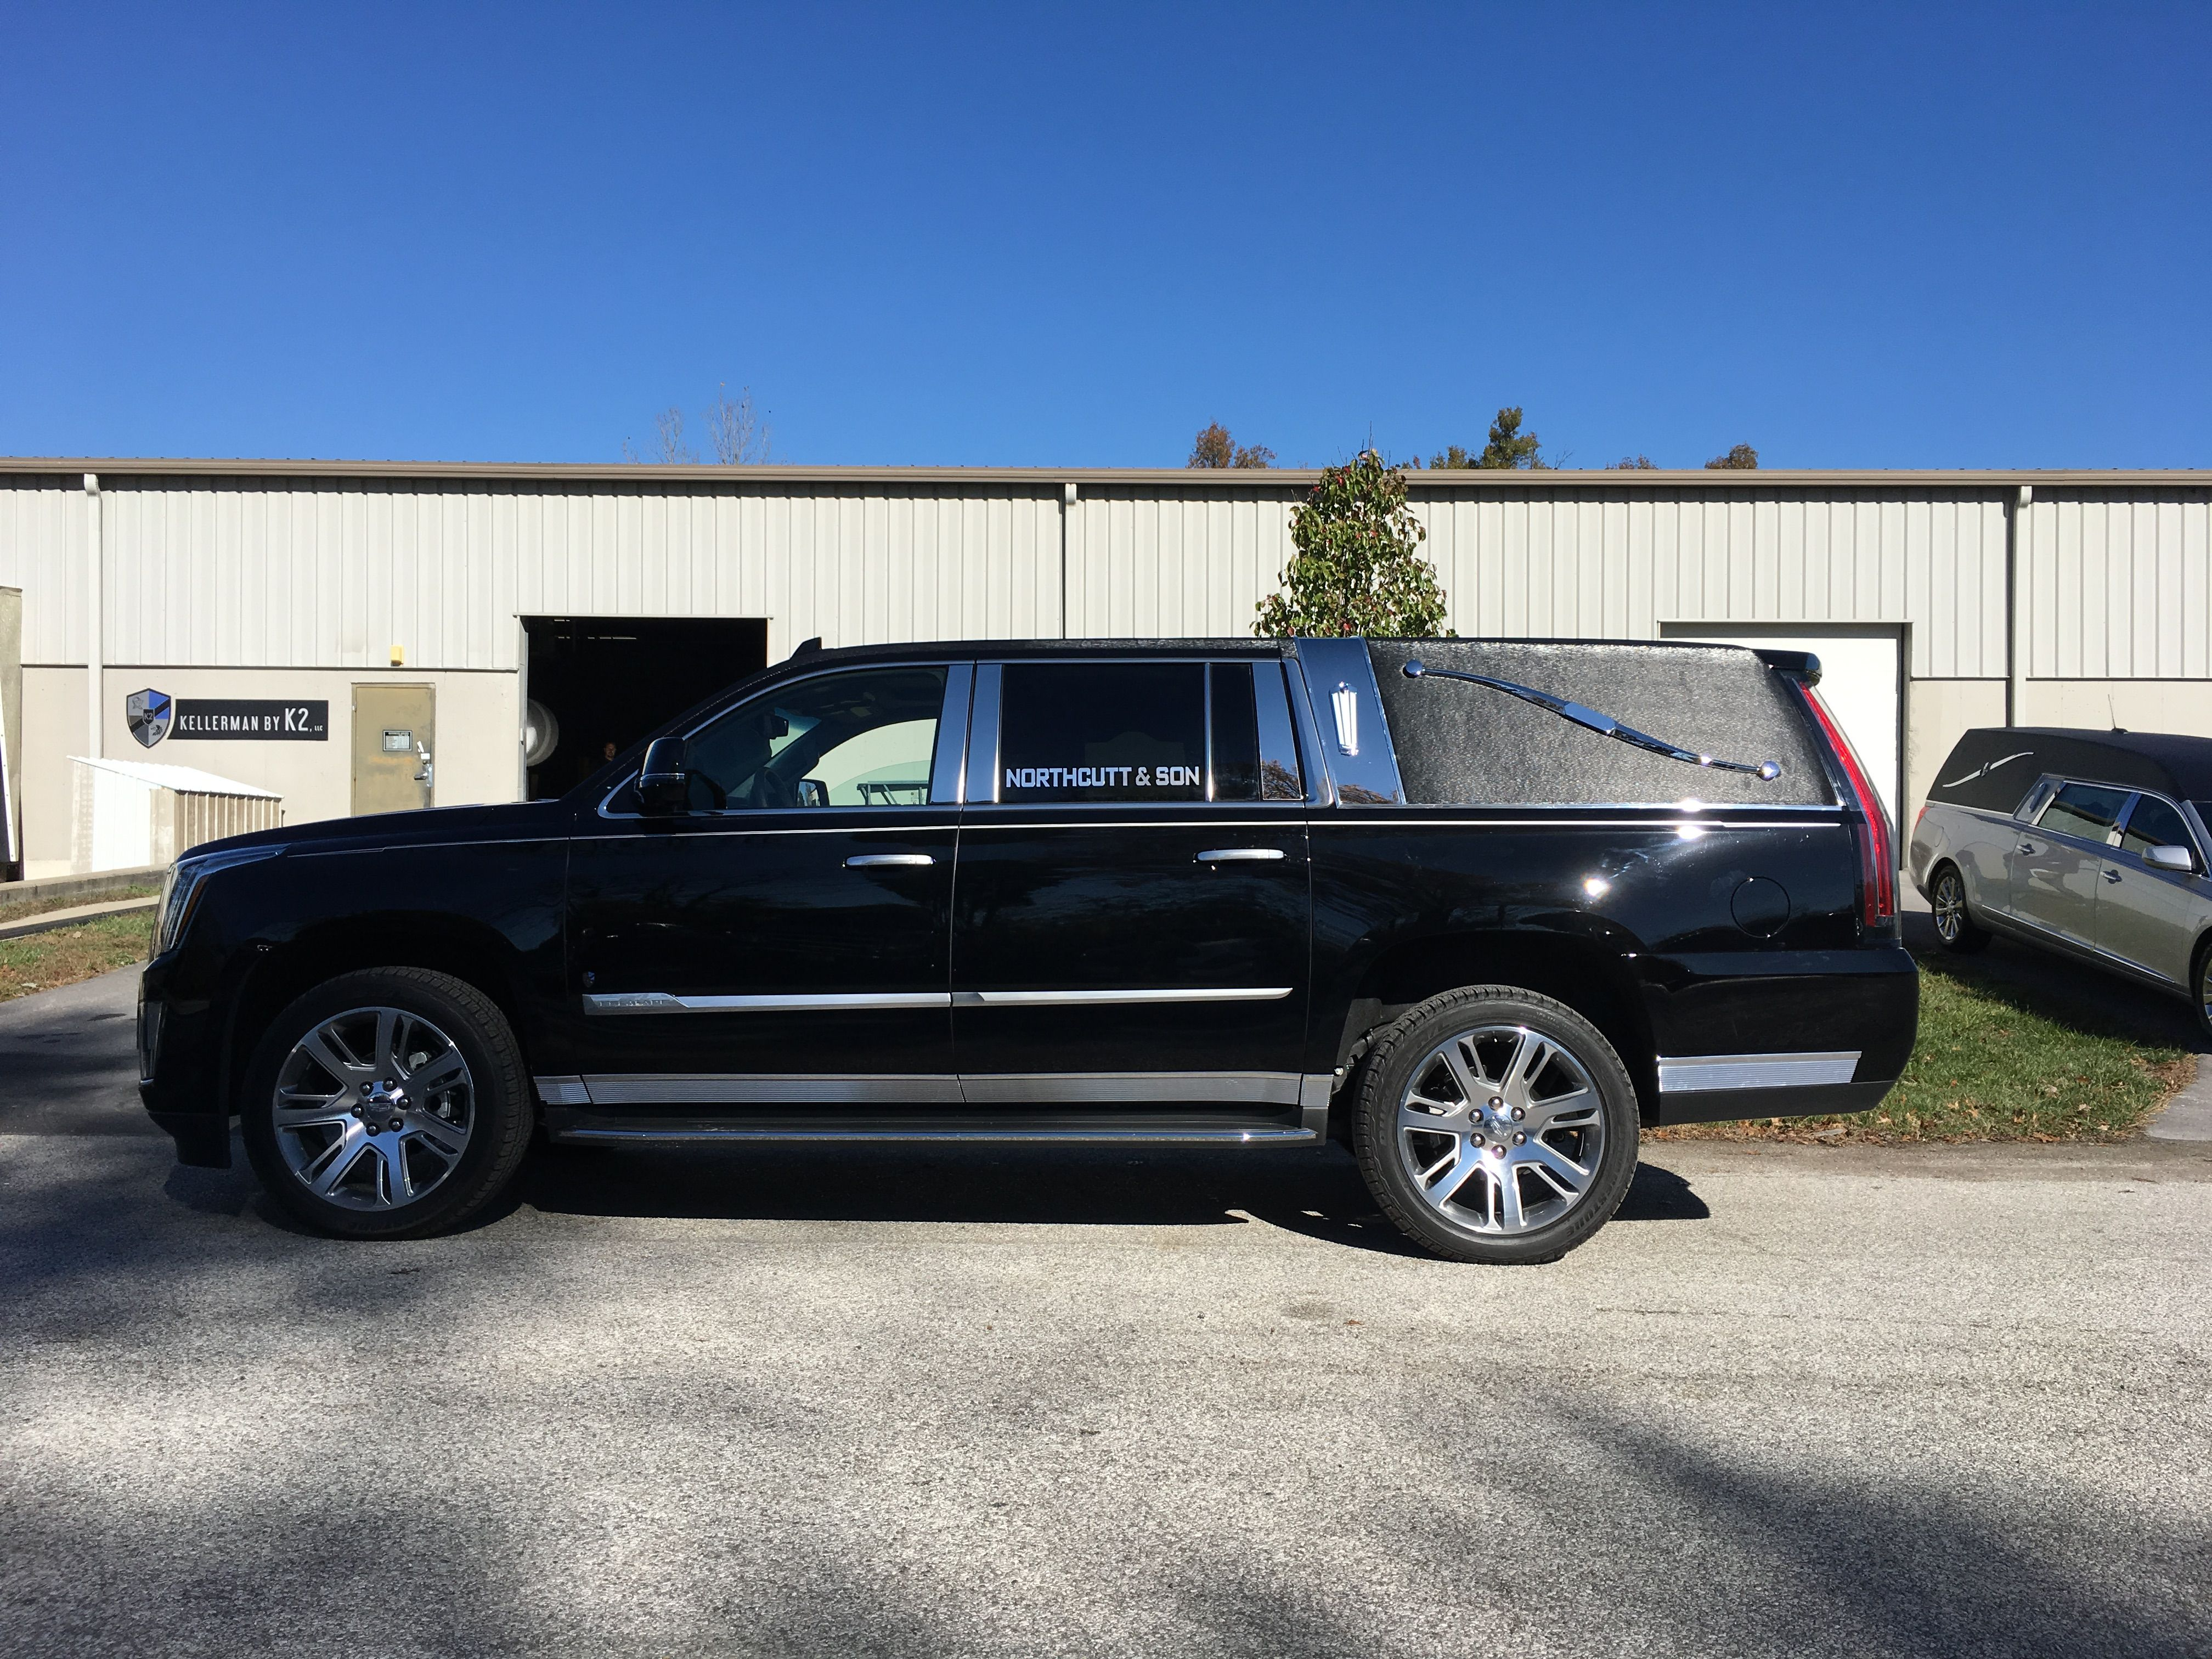 K2 vehicles cadillac escalade hearse business pinterest cadillac escalade cadillac and cars